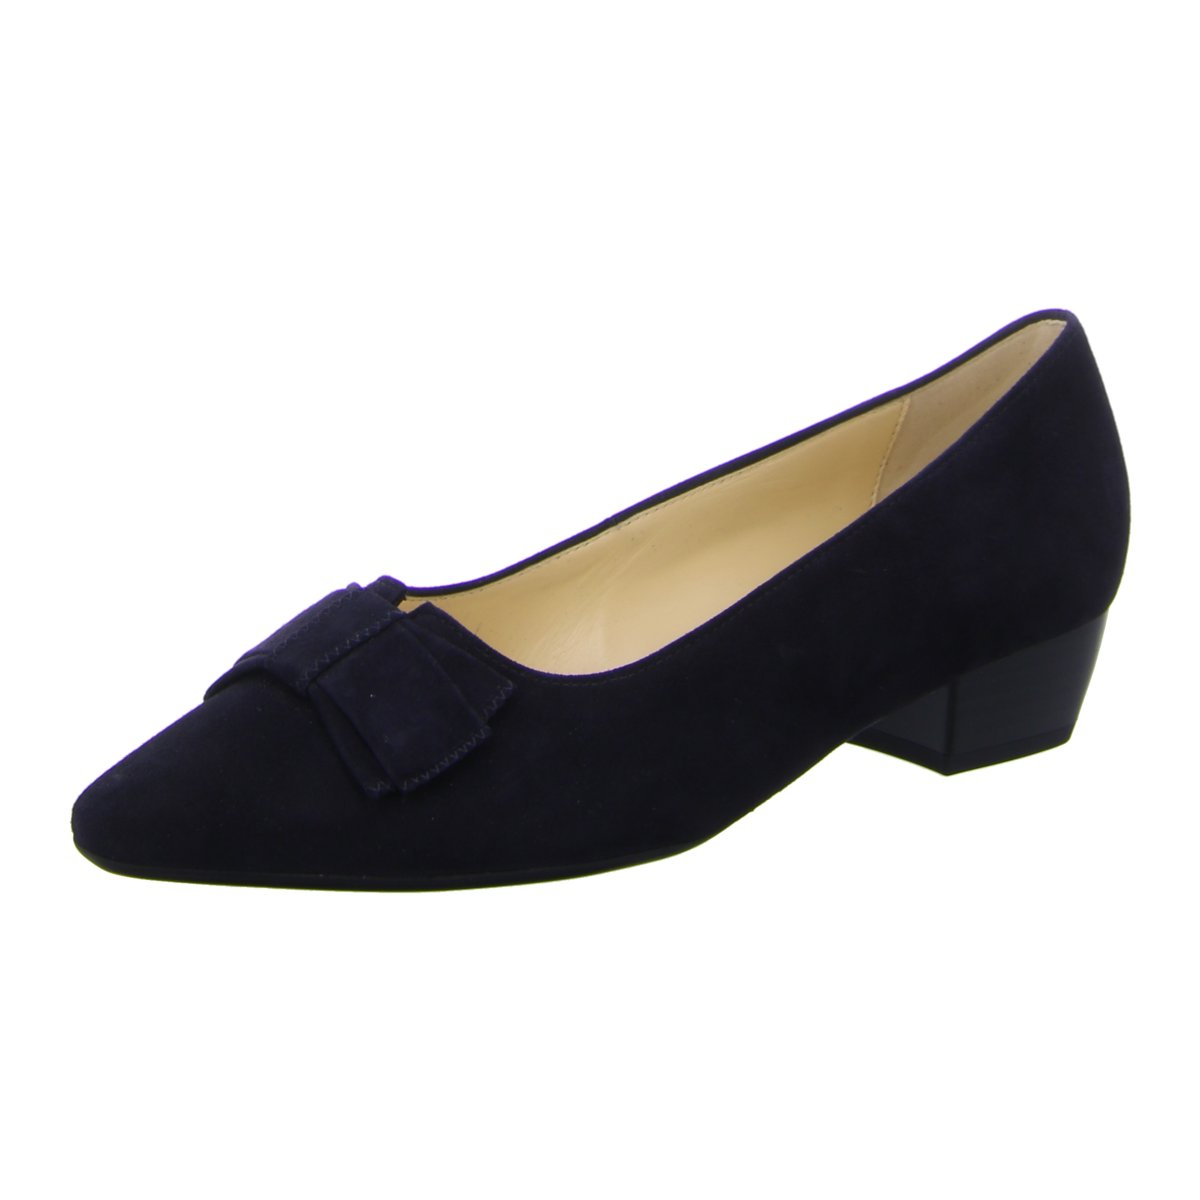 NEU Gabor Damen Pumps 55.132.16 blau 78017